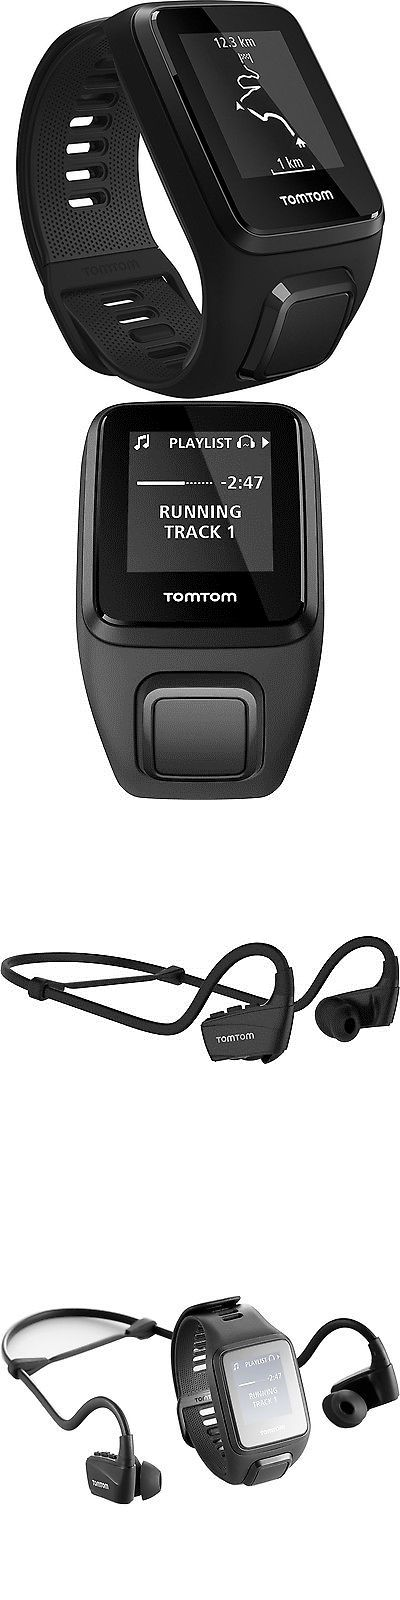 Heart Rate Monitors 15277: Tomtom Spark 3 Cardio Music Gps Fitness Watch Heart Rate Monitor (Black, S) 1Rkm -> BUY IT NOW ONLY: $229.99 on eBay!